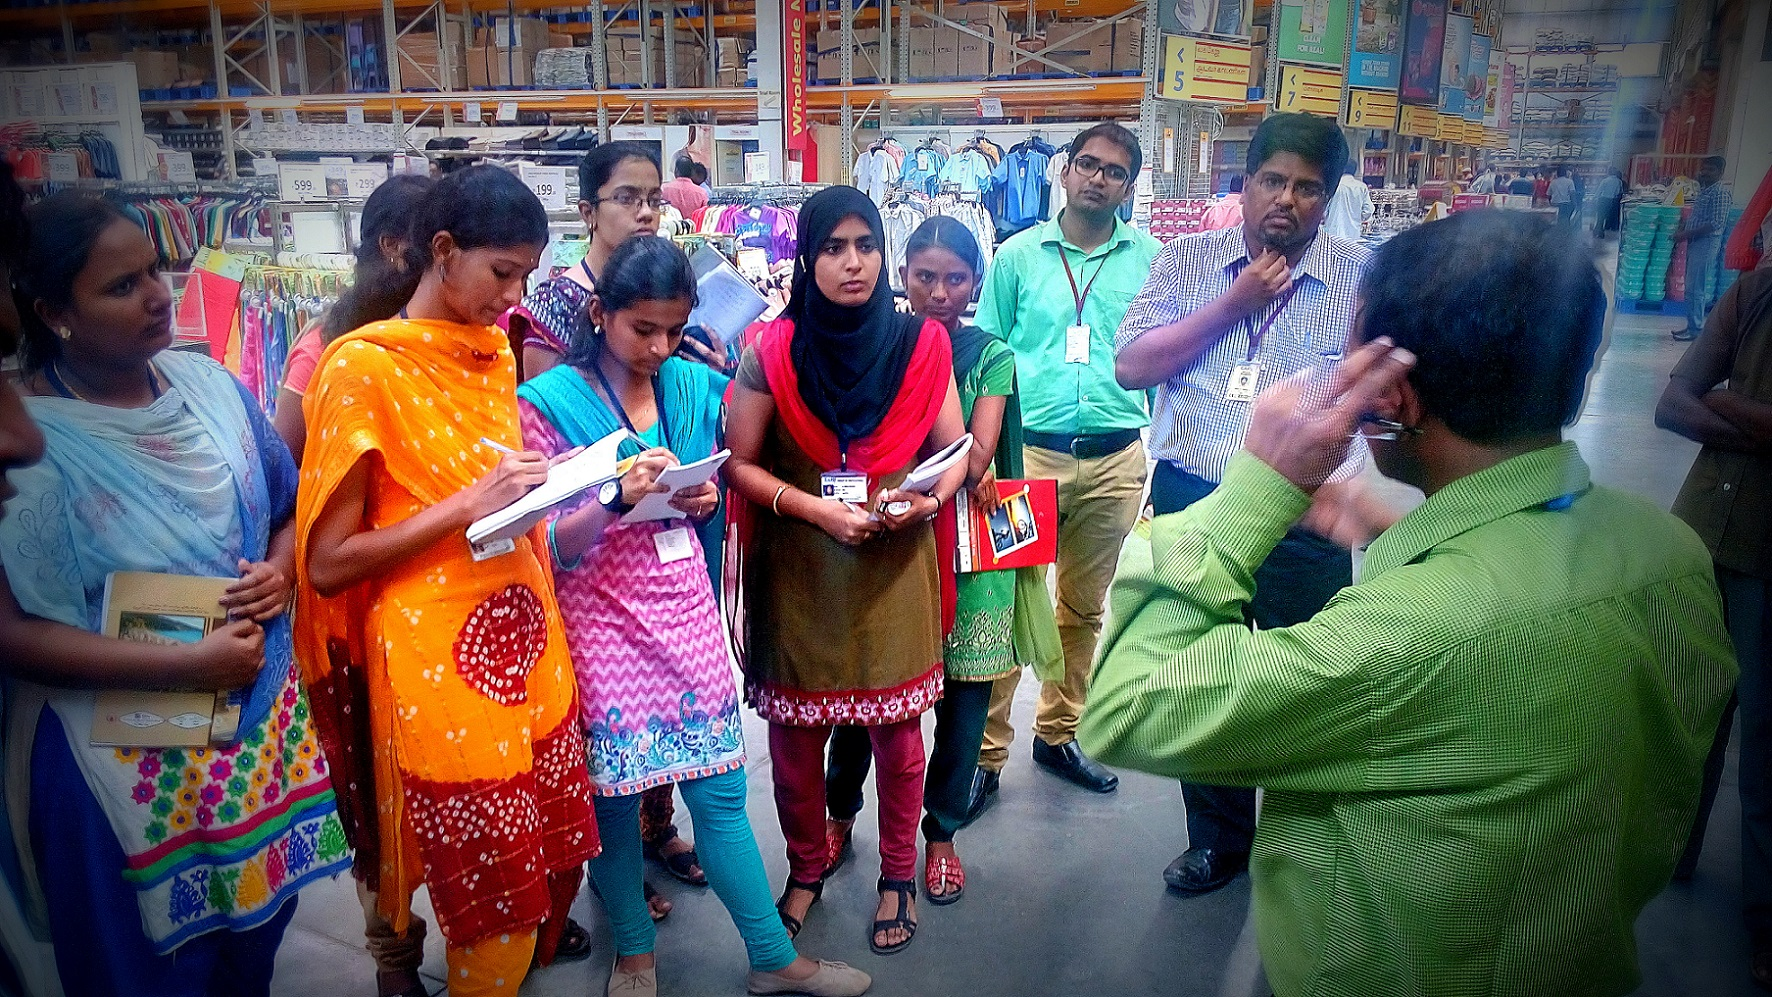 A Visit to Study Wholesale Retail Format and the Best Retail Practices at Reliance Market, Trichy – Mr. Chowdry – Manager Operations, Reliance Market